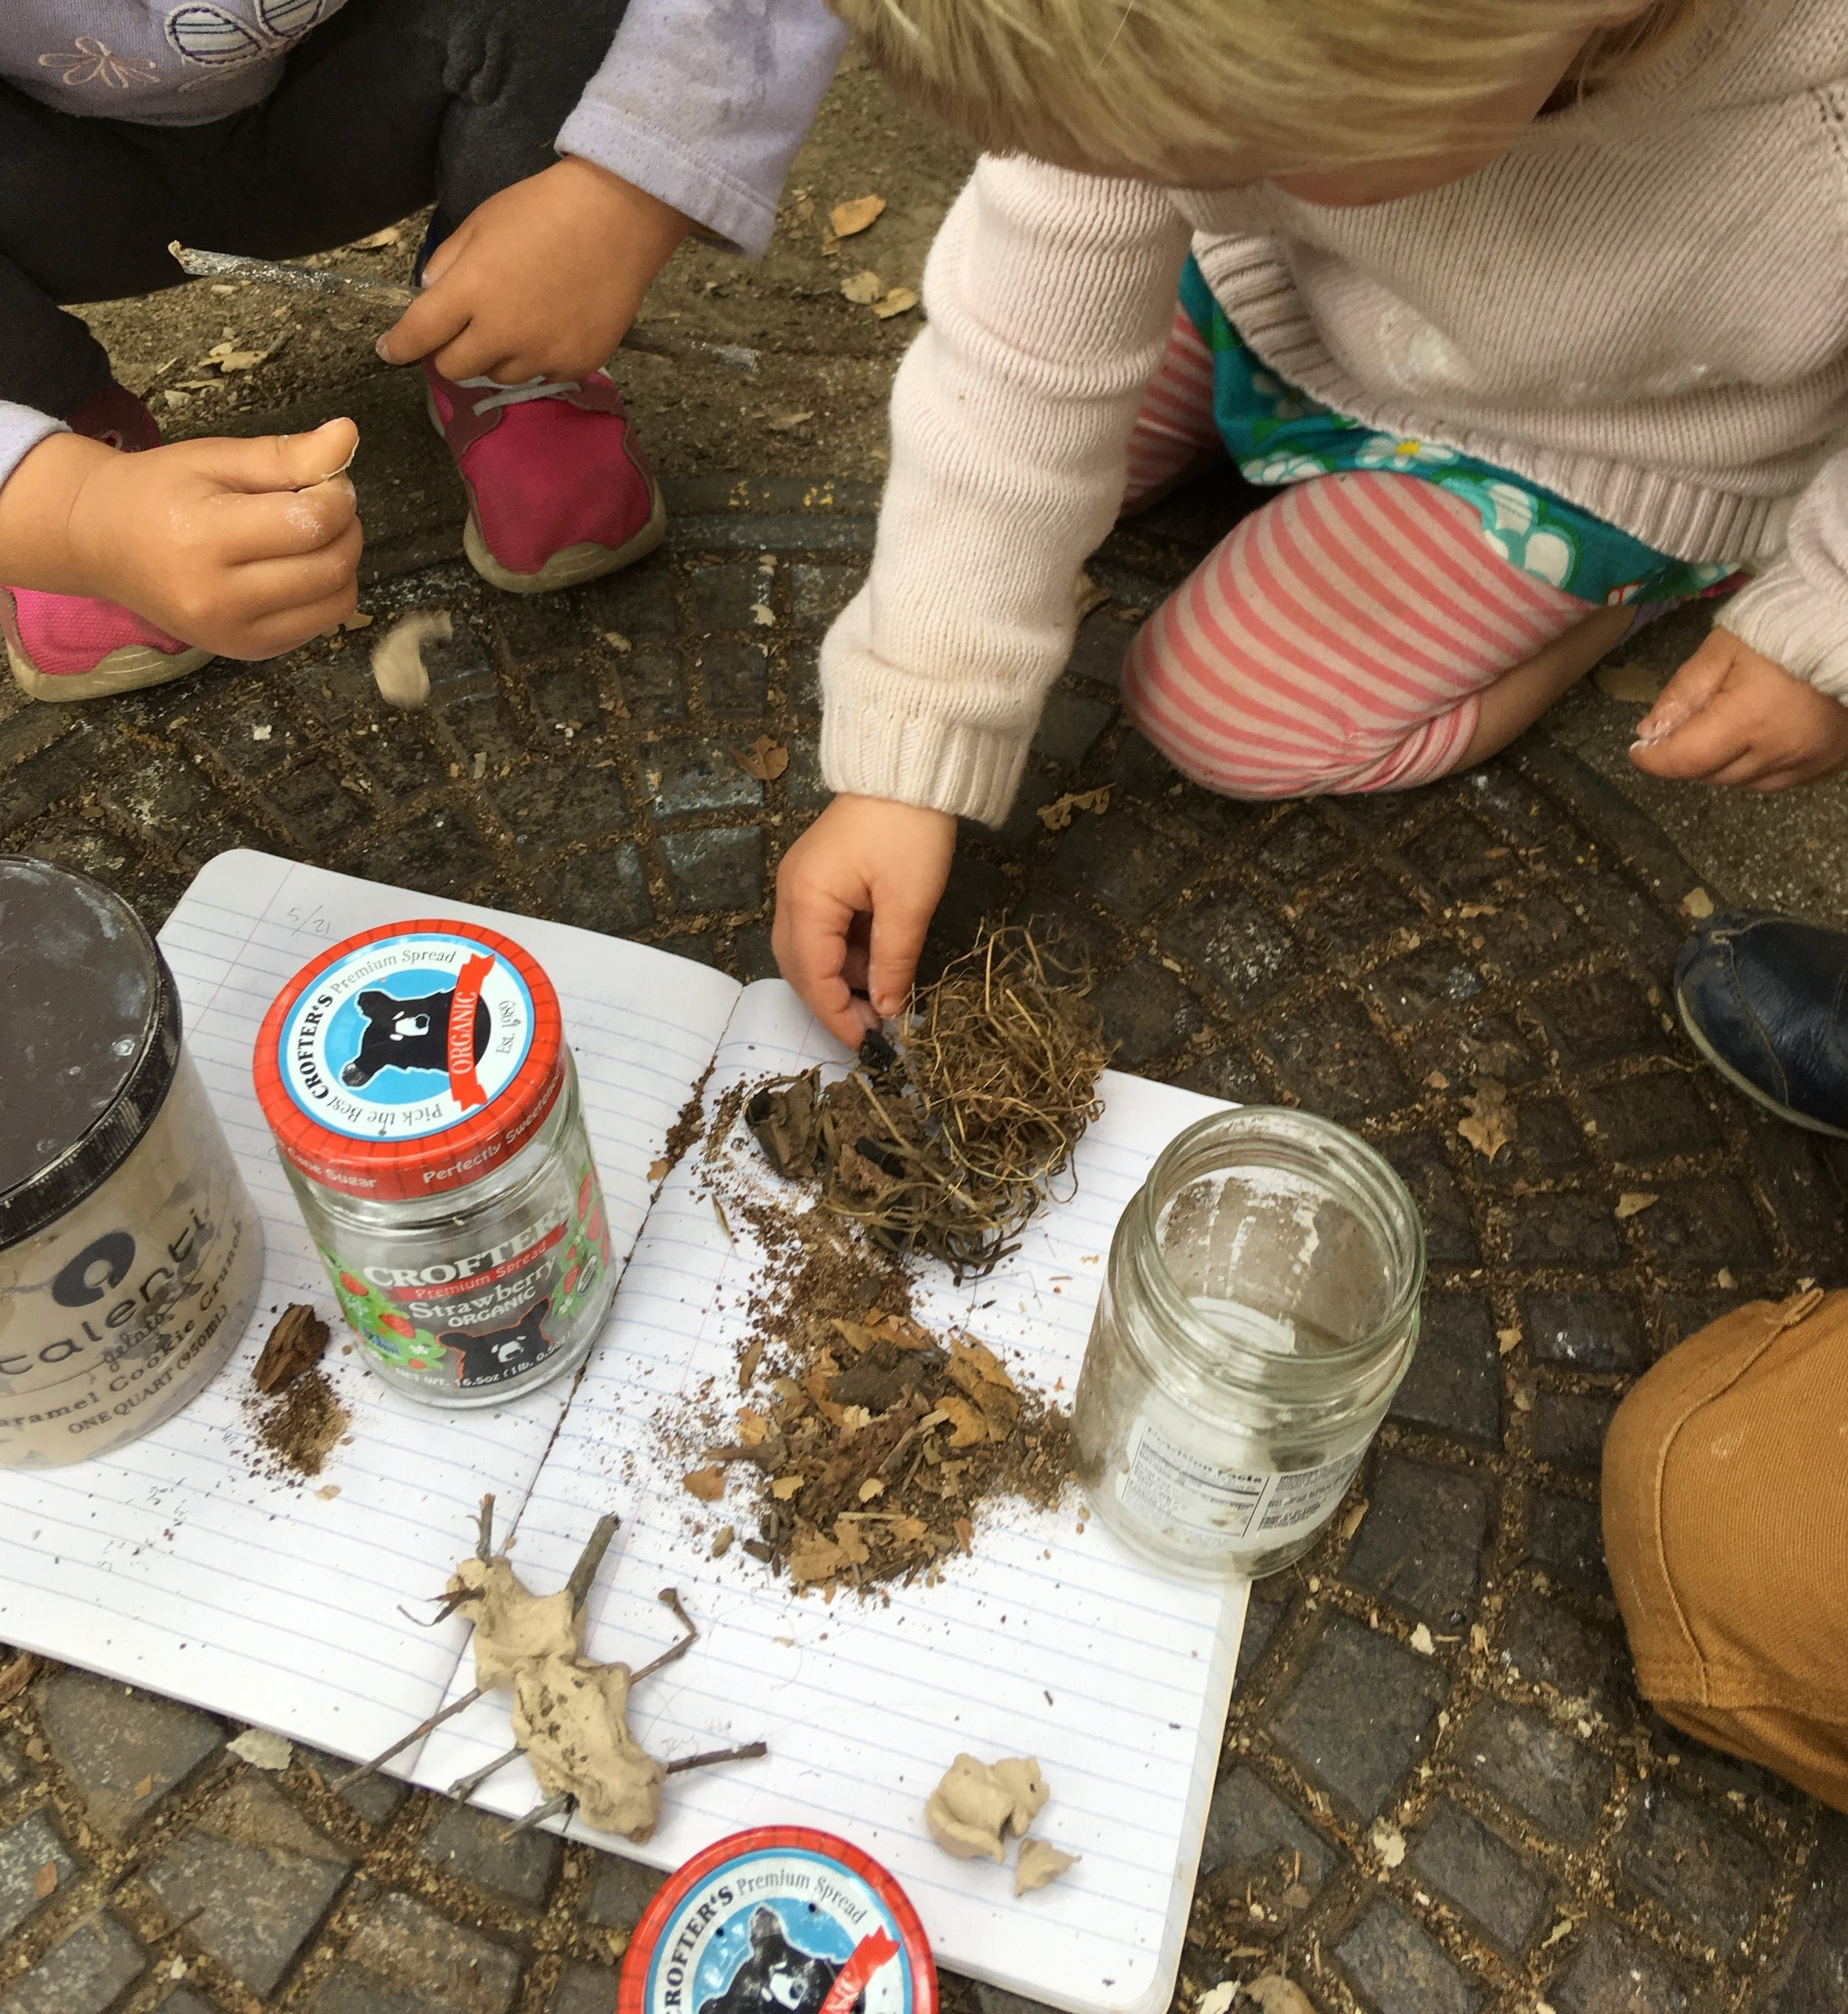 Field journals, bug observations, and expression of scientific findings through clay.